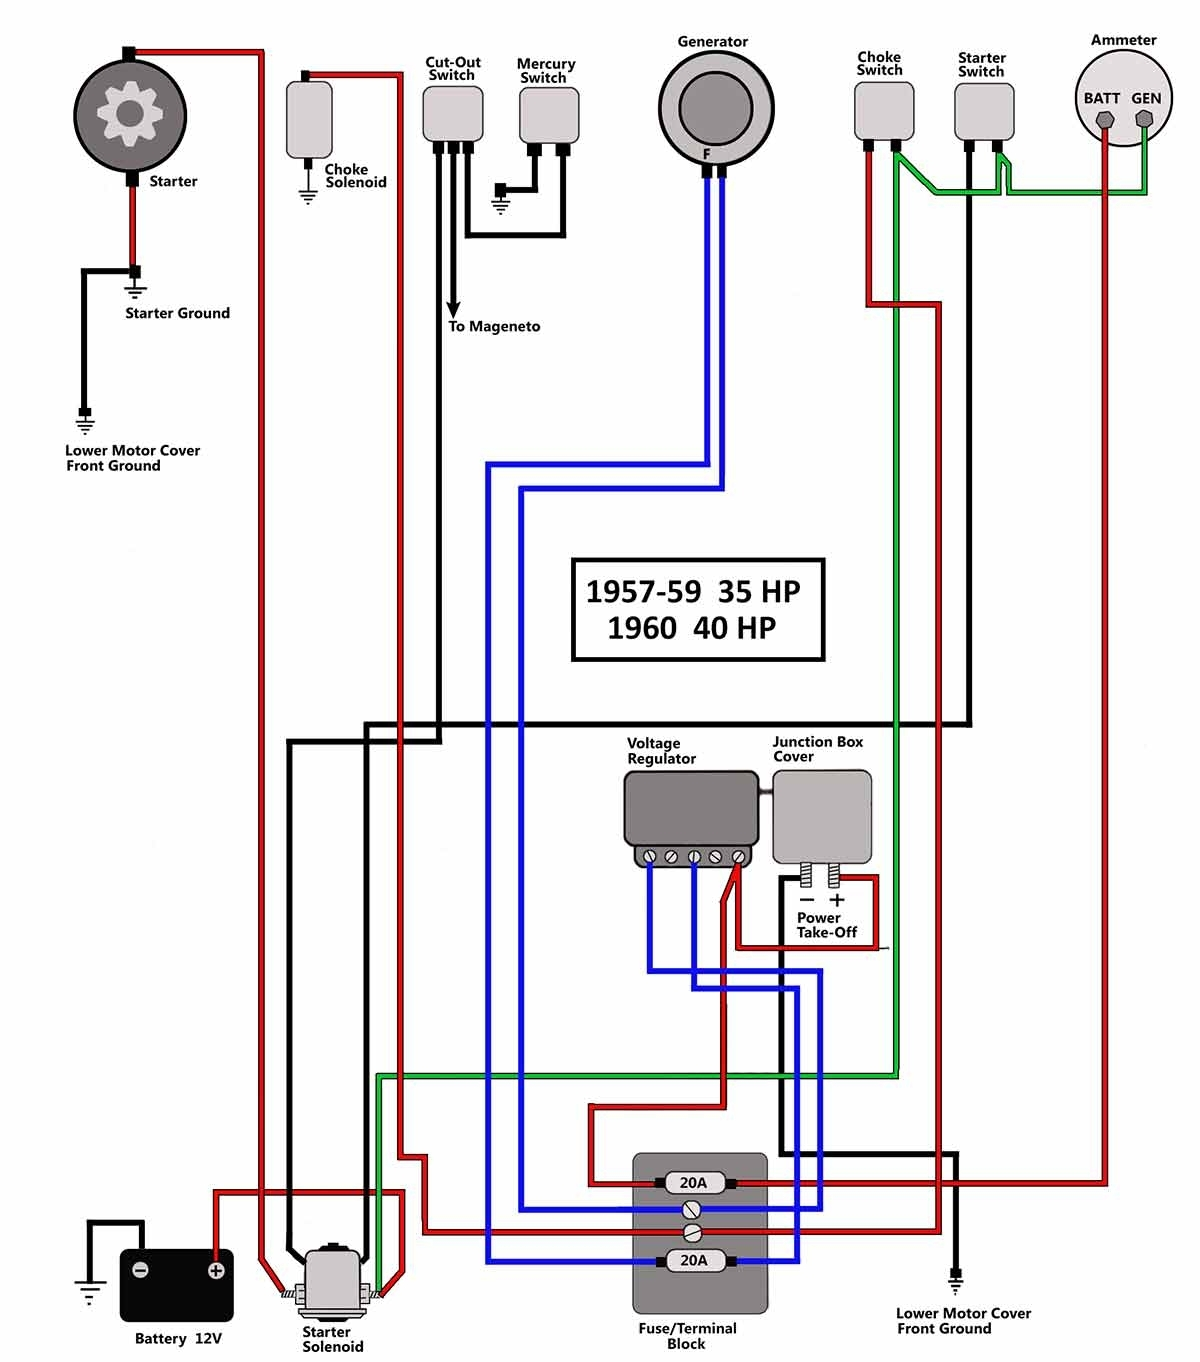 vdo gauges wiring diagrams and boat tach diagram e z go golf cart for boat gauge wiring diagram for tachometer vdo gauges wiring diagrams gauge wiring diagram at gsmx.co